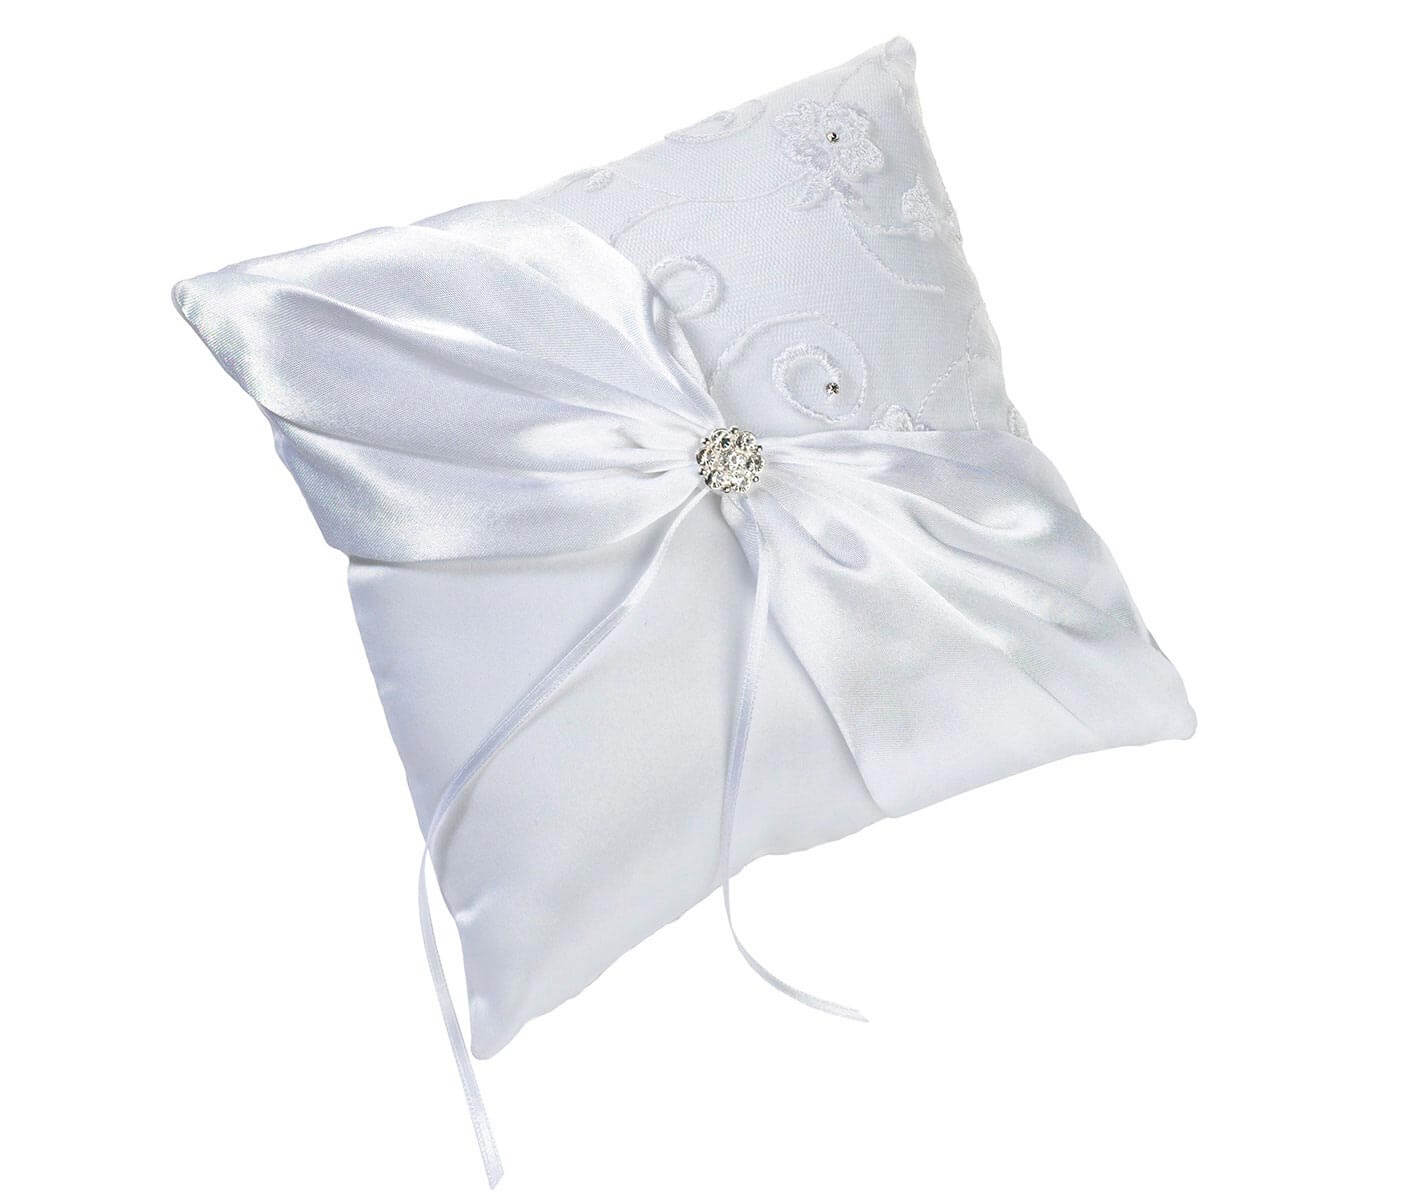 pillow itm a bearer ring double rhinestone gift details about heart bedroom wedding cushions